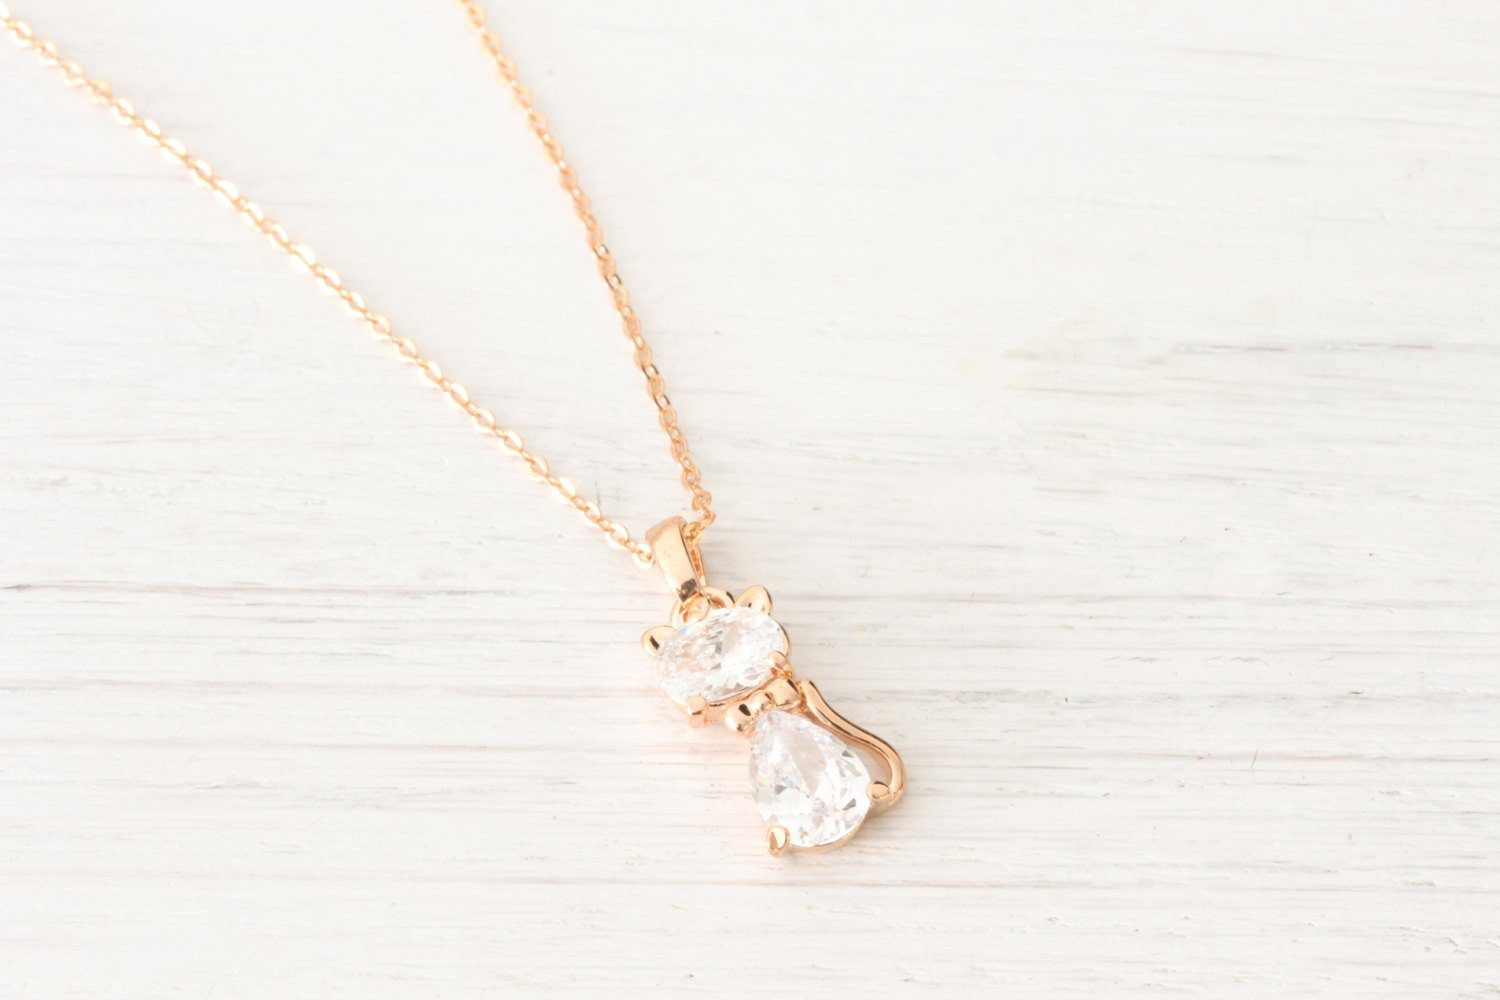 Dainty Rose Gold Cat Necklace Rhinestone Crystals - product_type] - Beautiz